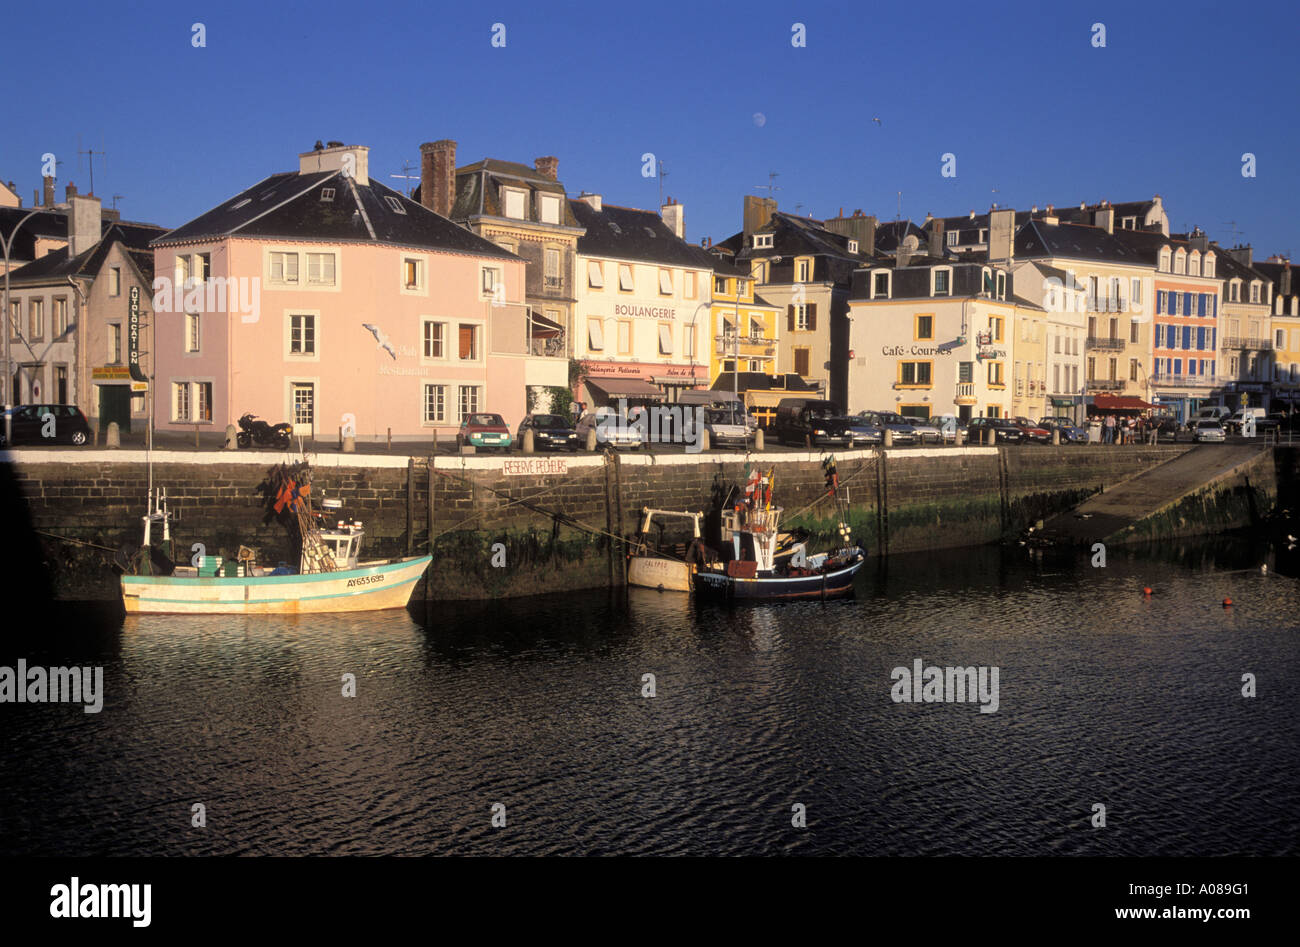 harbour le palais belle ile en mer france stock photo. Black Bedroom Furniture Sets. Home Design Ideas